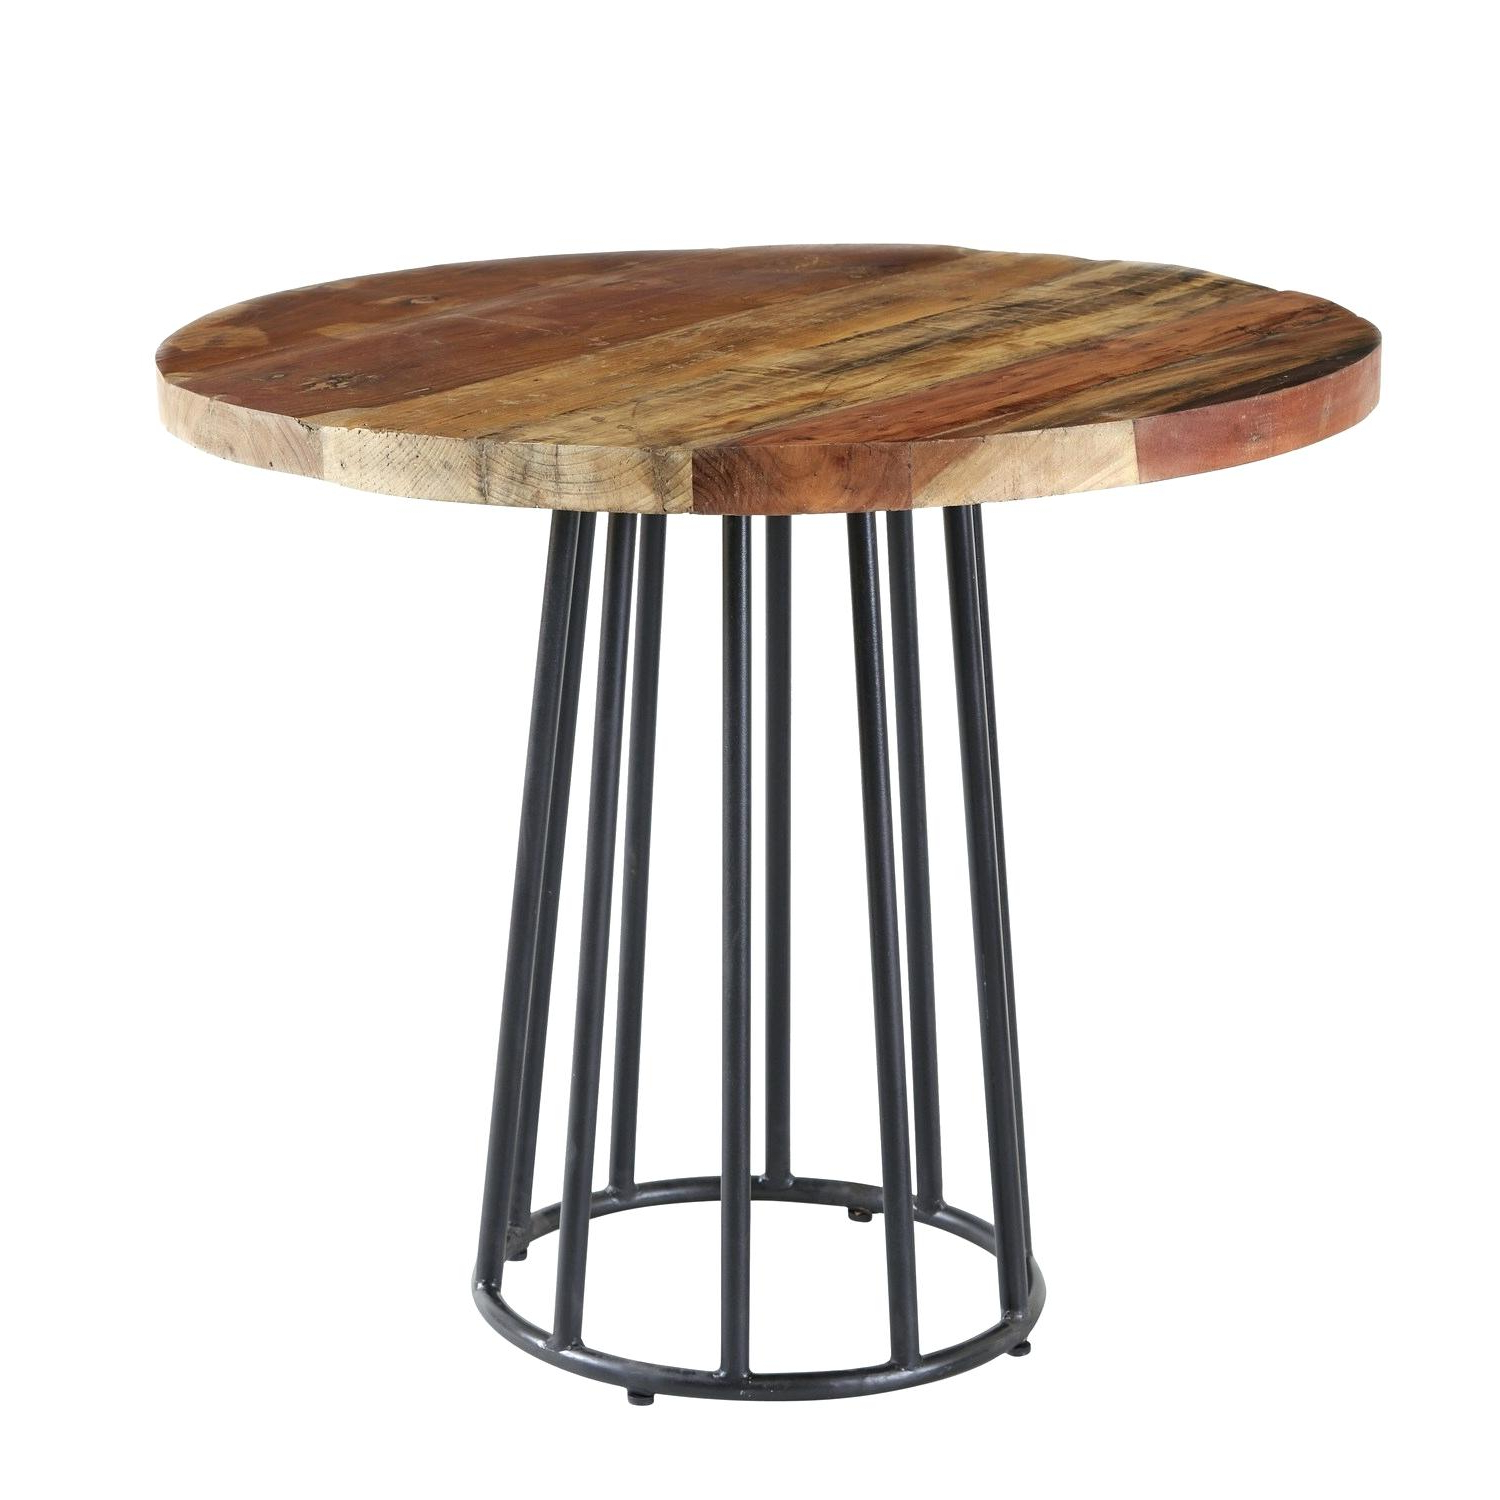 2020 Griffin Reclaimed Wood Dining Tables regarding Salespots – Dining Table